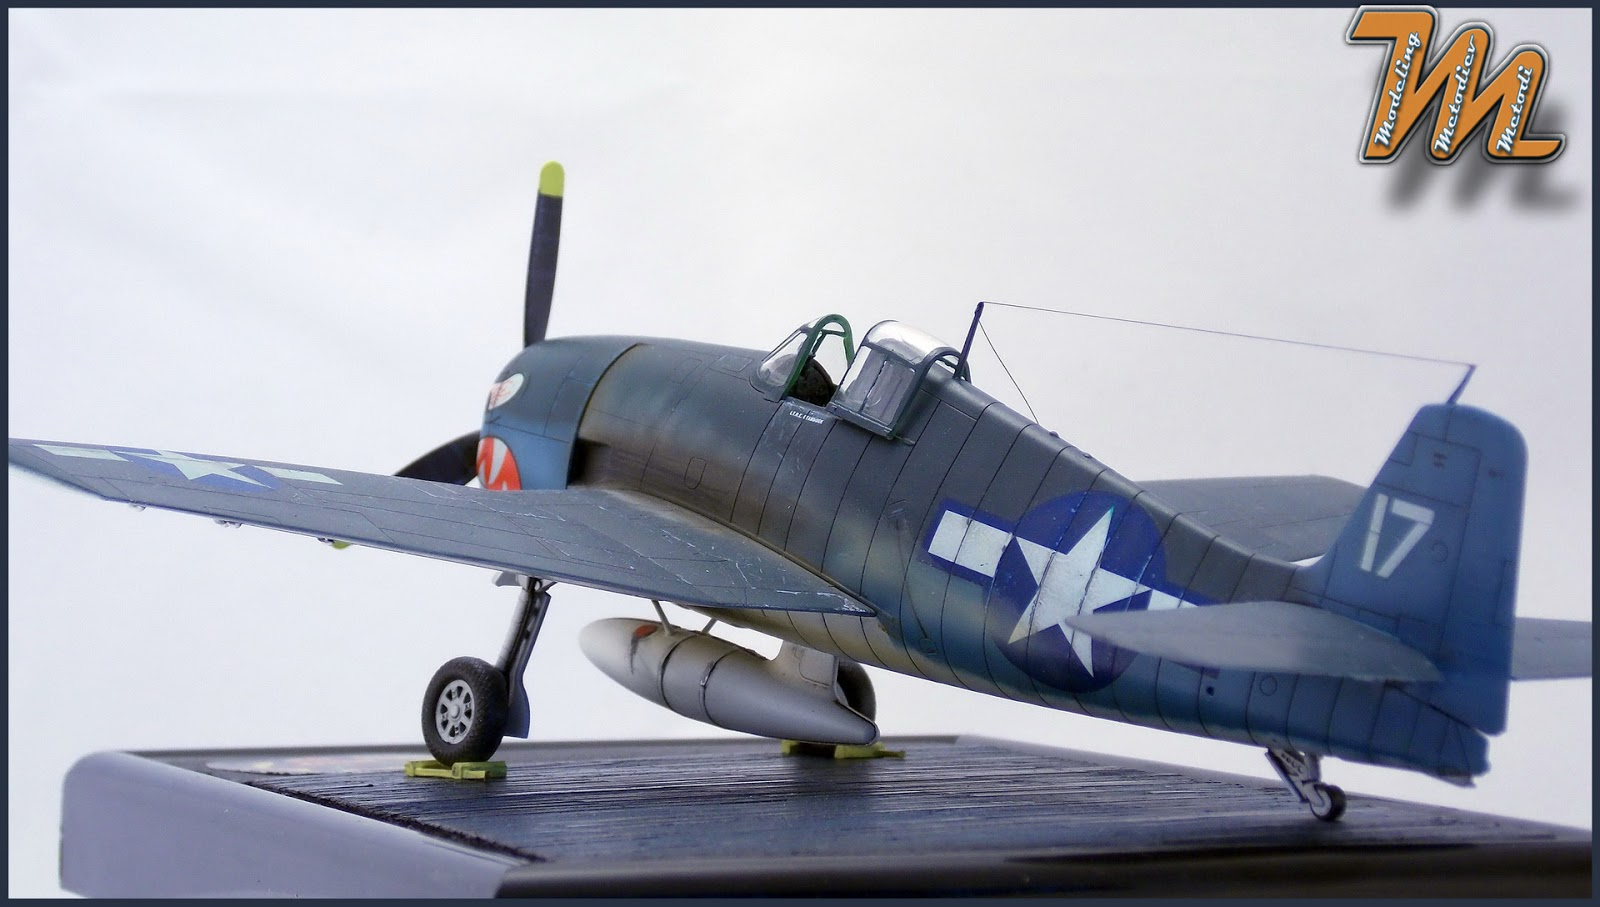 F6F-3 Hellcat, VF-27, scale model